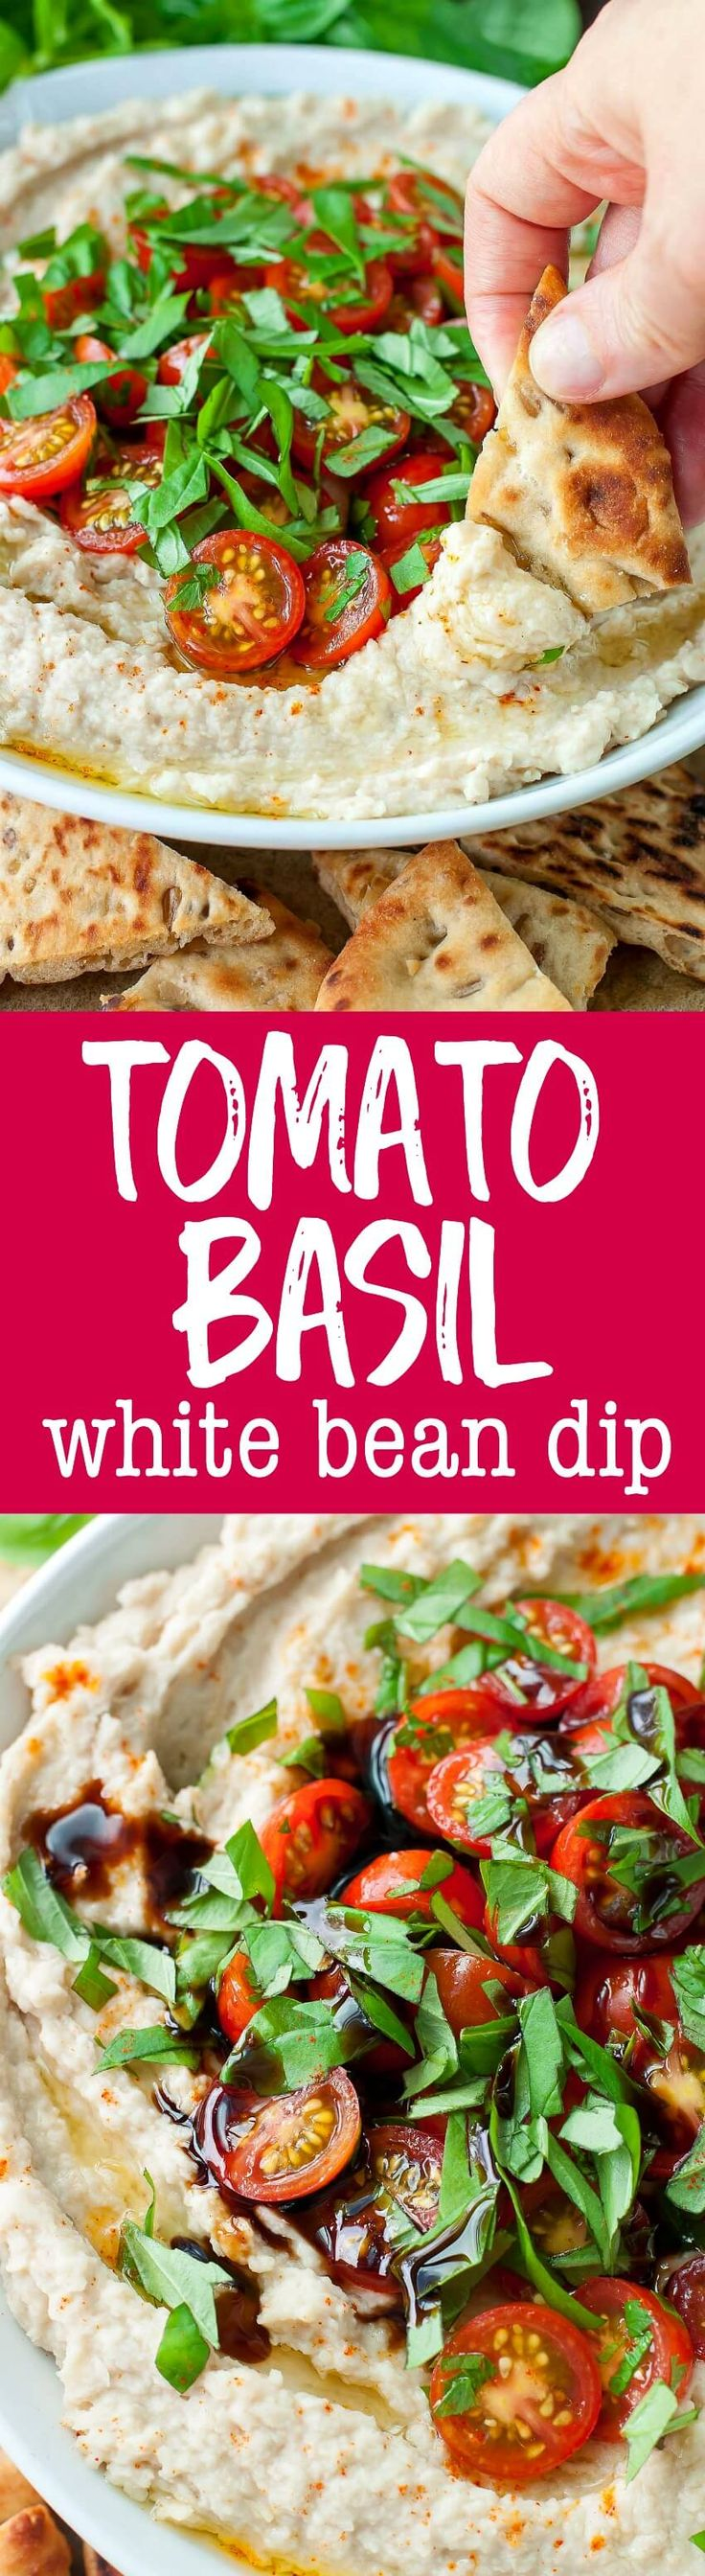 Snack in style with this healthy Tomato Basil White Bean Dip. It comes together in minutes and can be made in advance for easy peasy snacking, without the fuss!